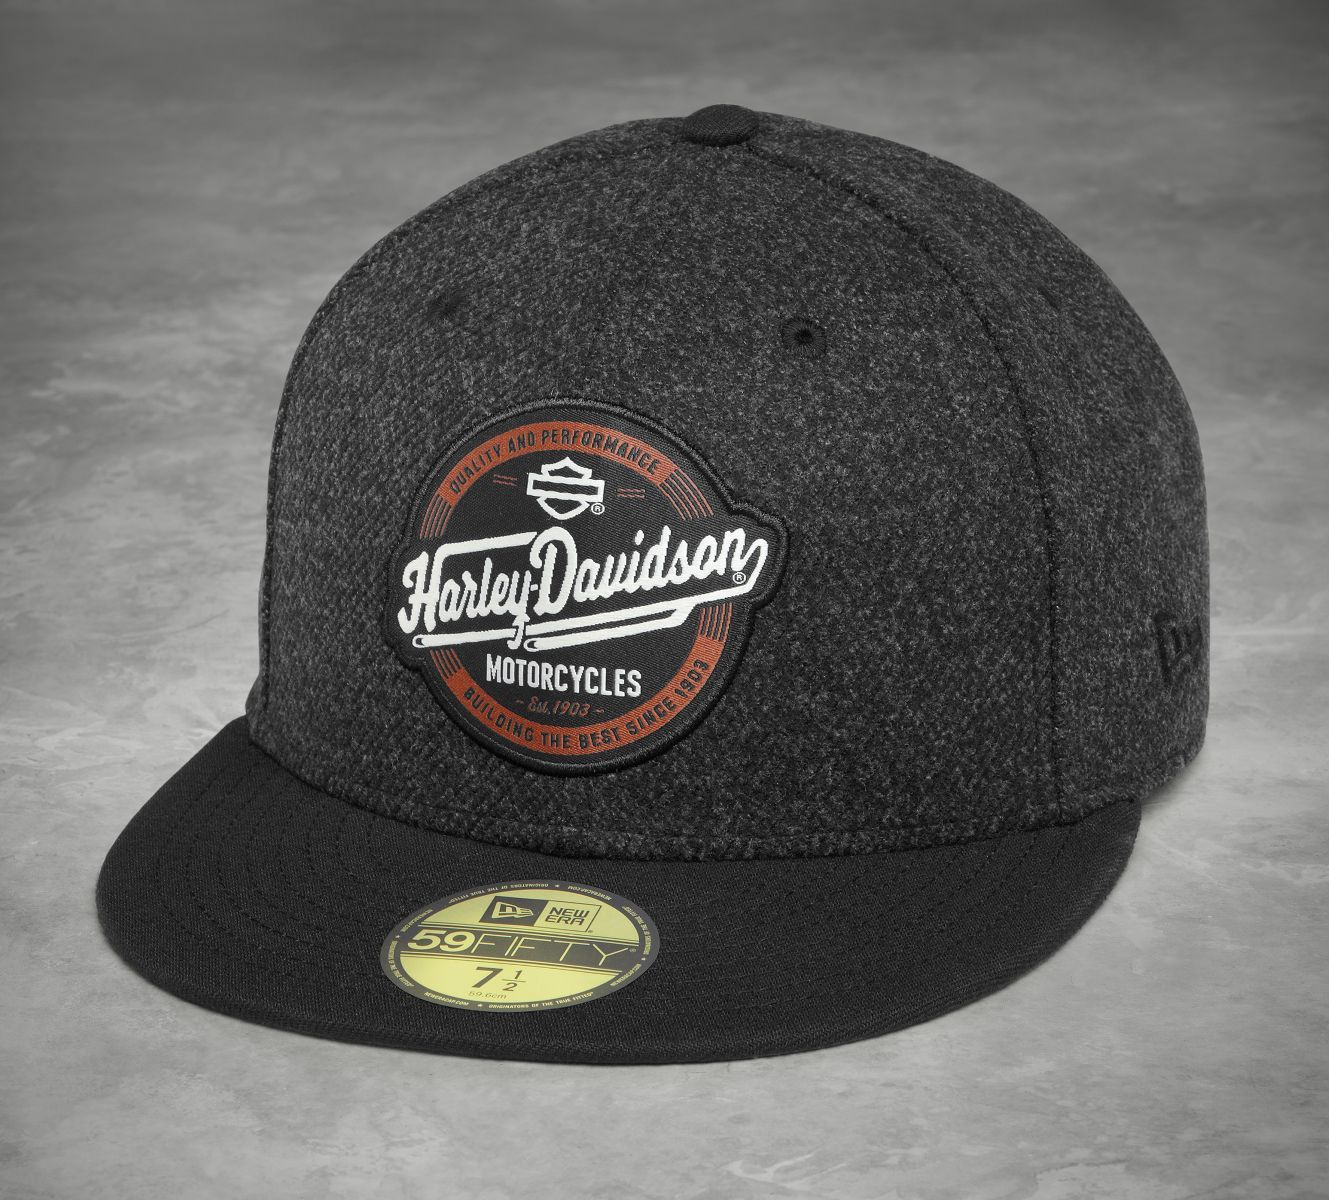 Harley-Davidson® Men s Black 59 Fifty Circle Patch Baseball Cap ... 2ca86c7cb713